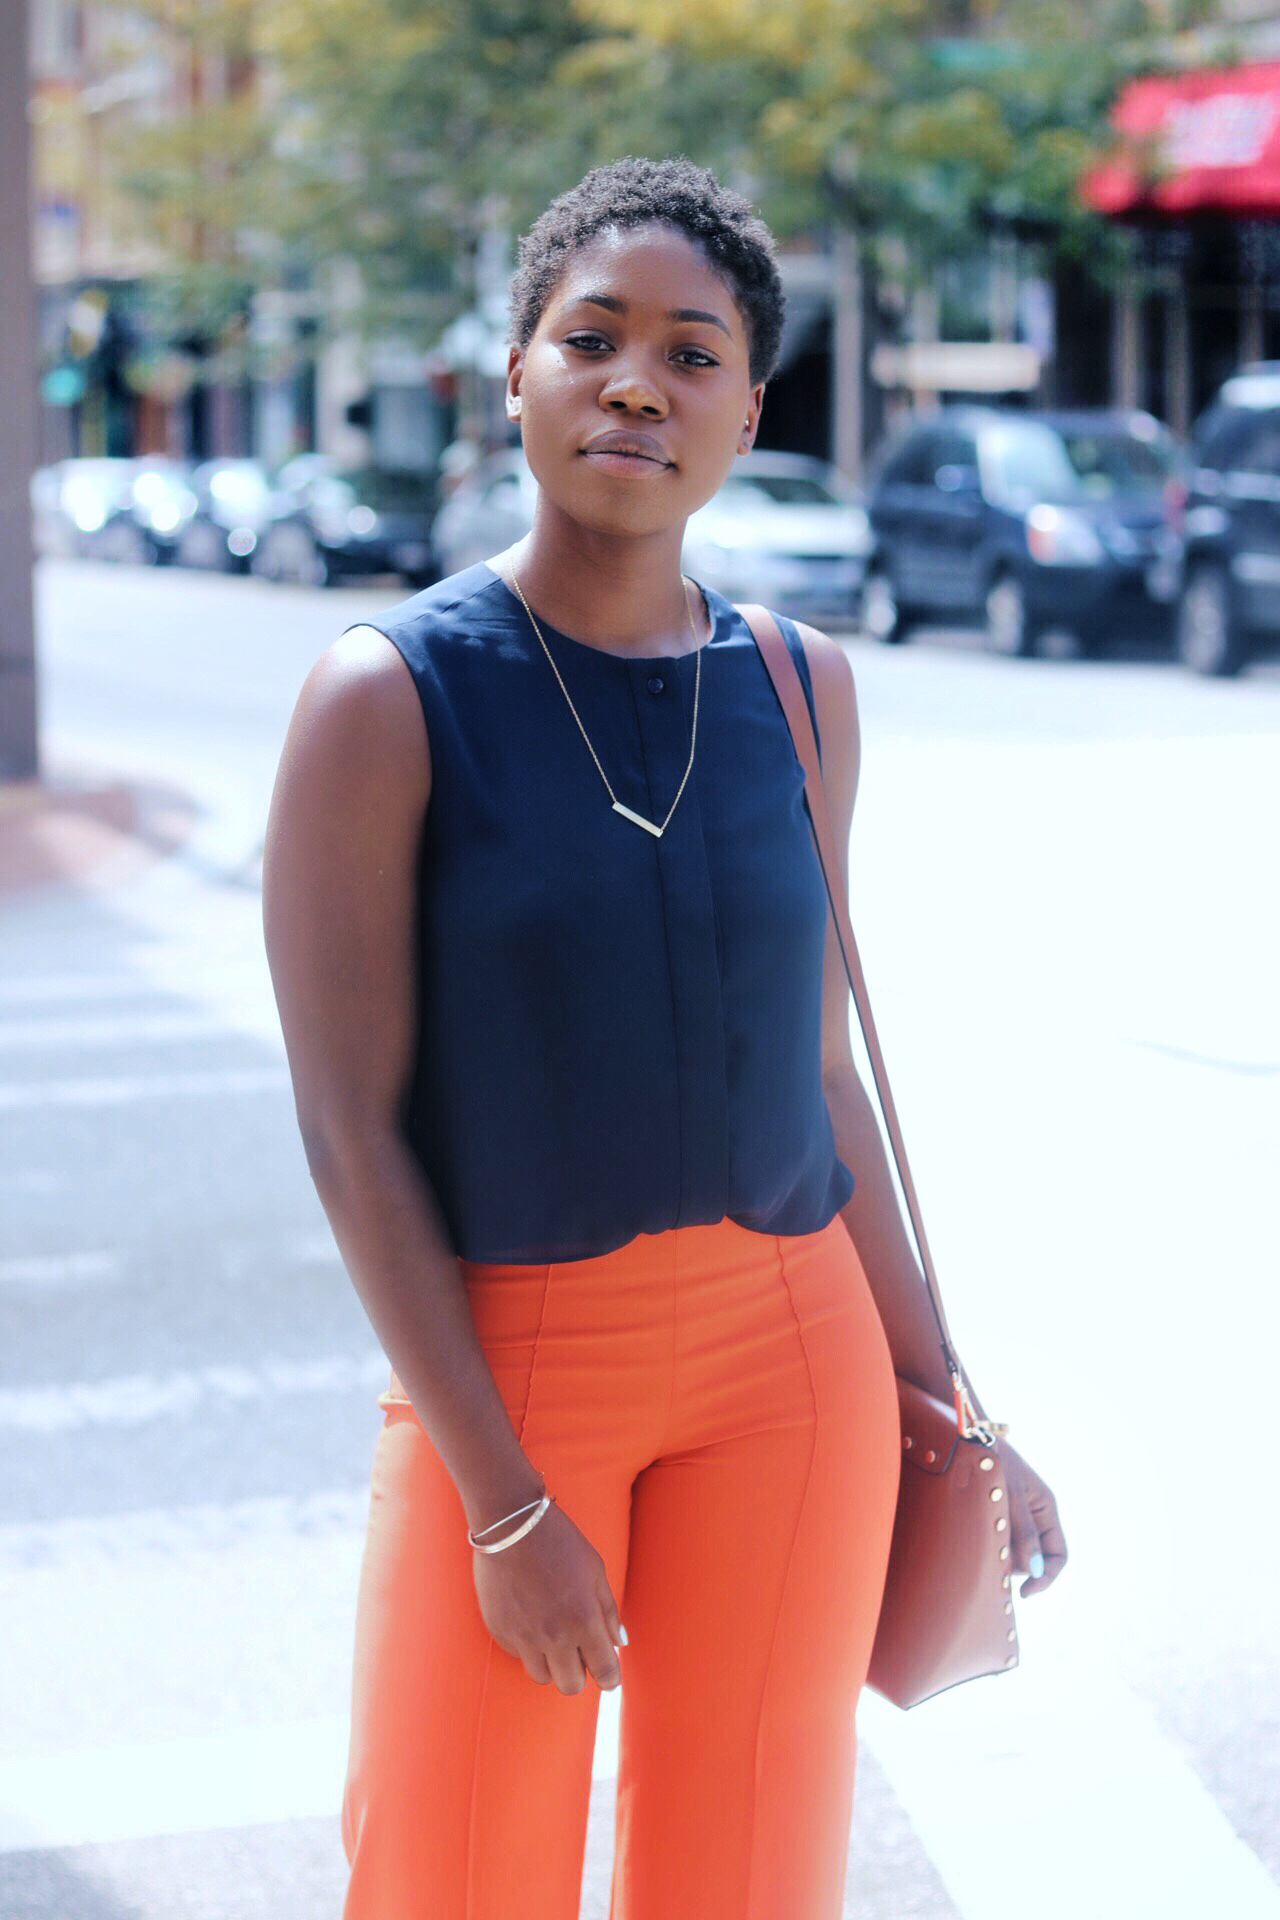 style-synopsis-wide-legged-high-waist-pants-navy-top